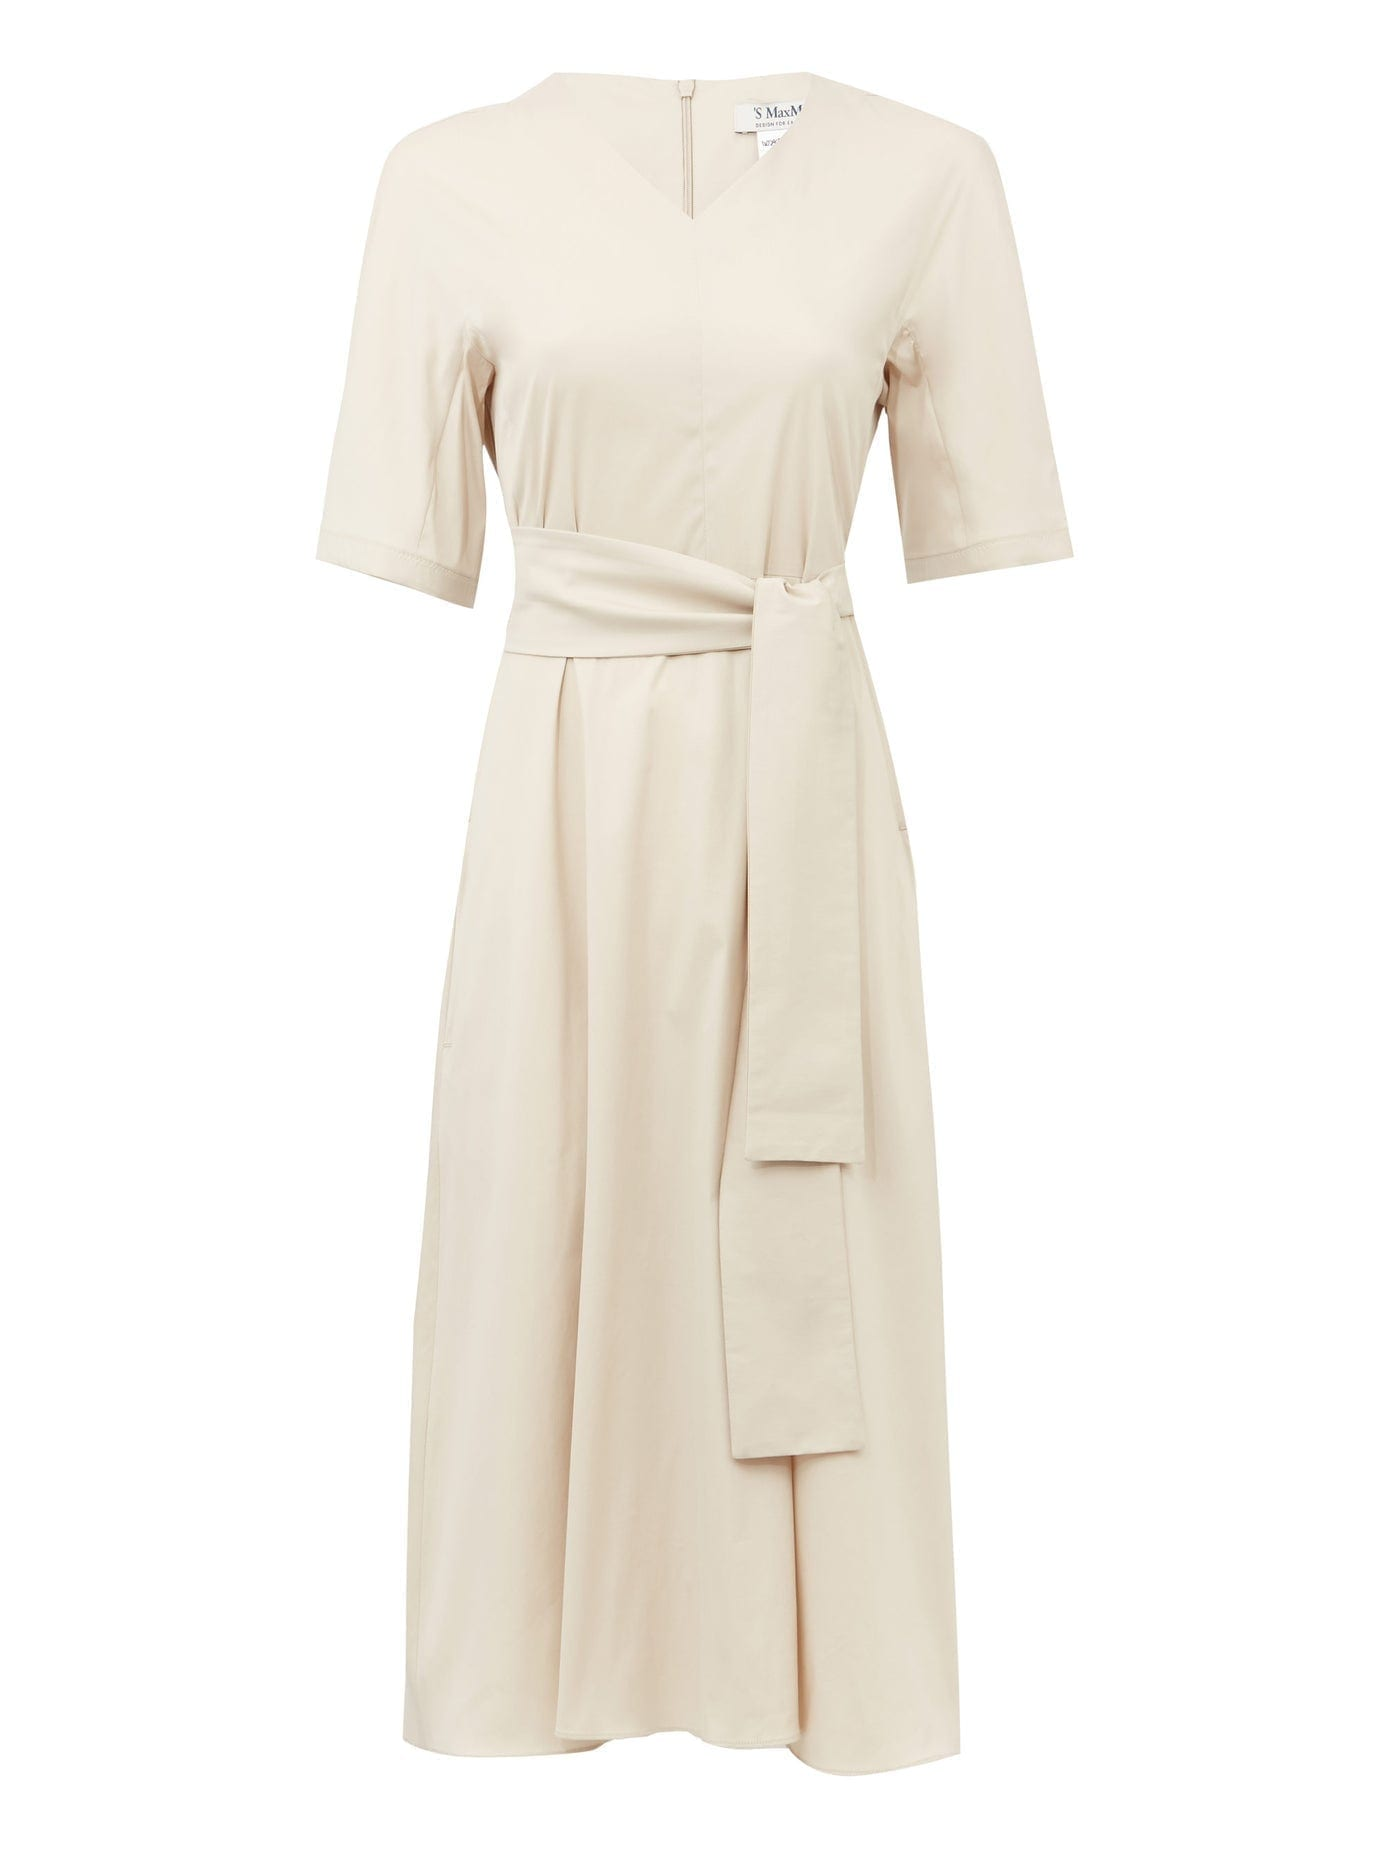 S MAX MARA Lea Dress